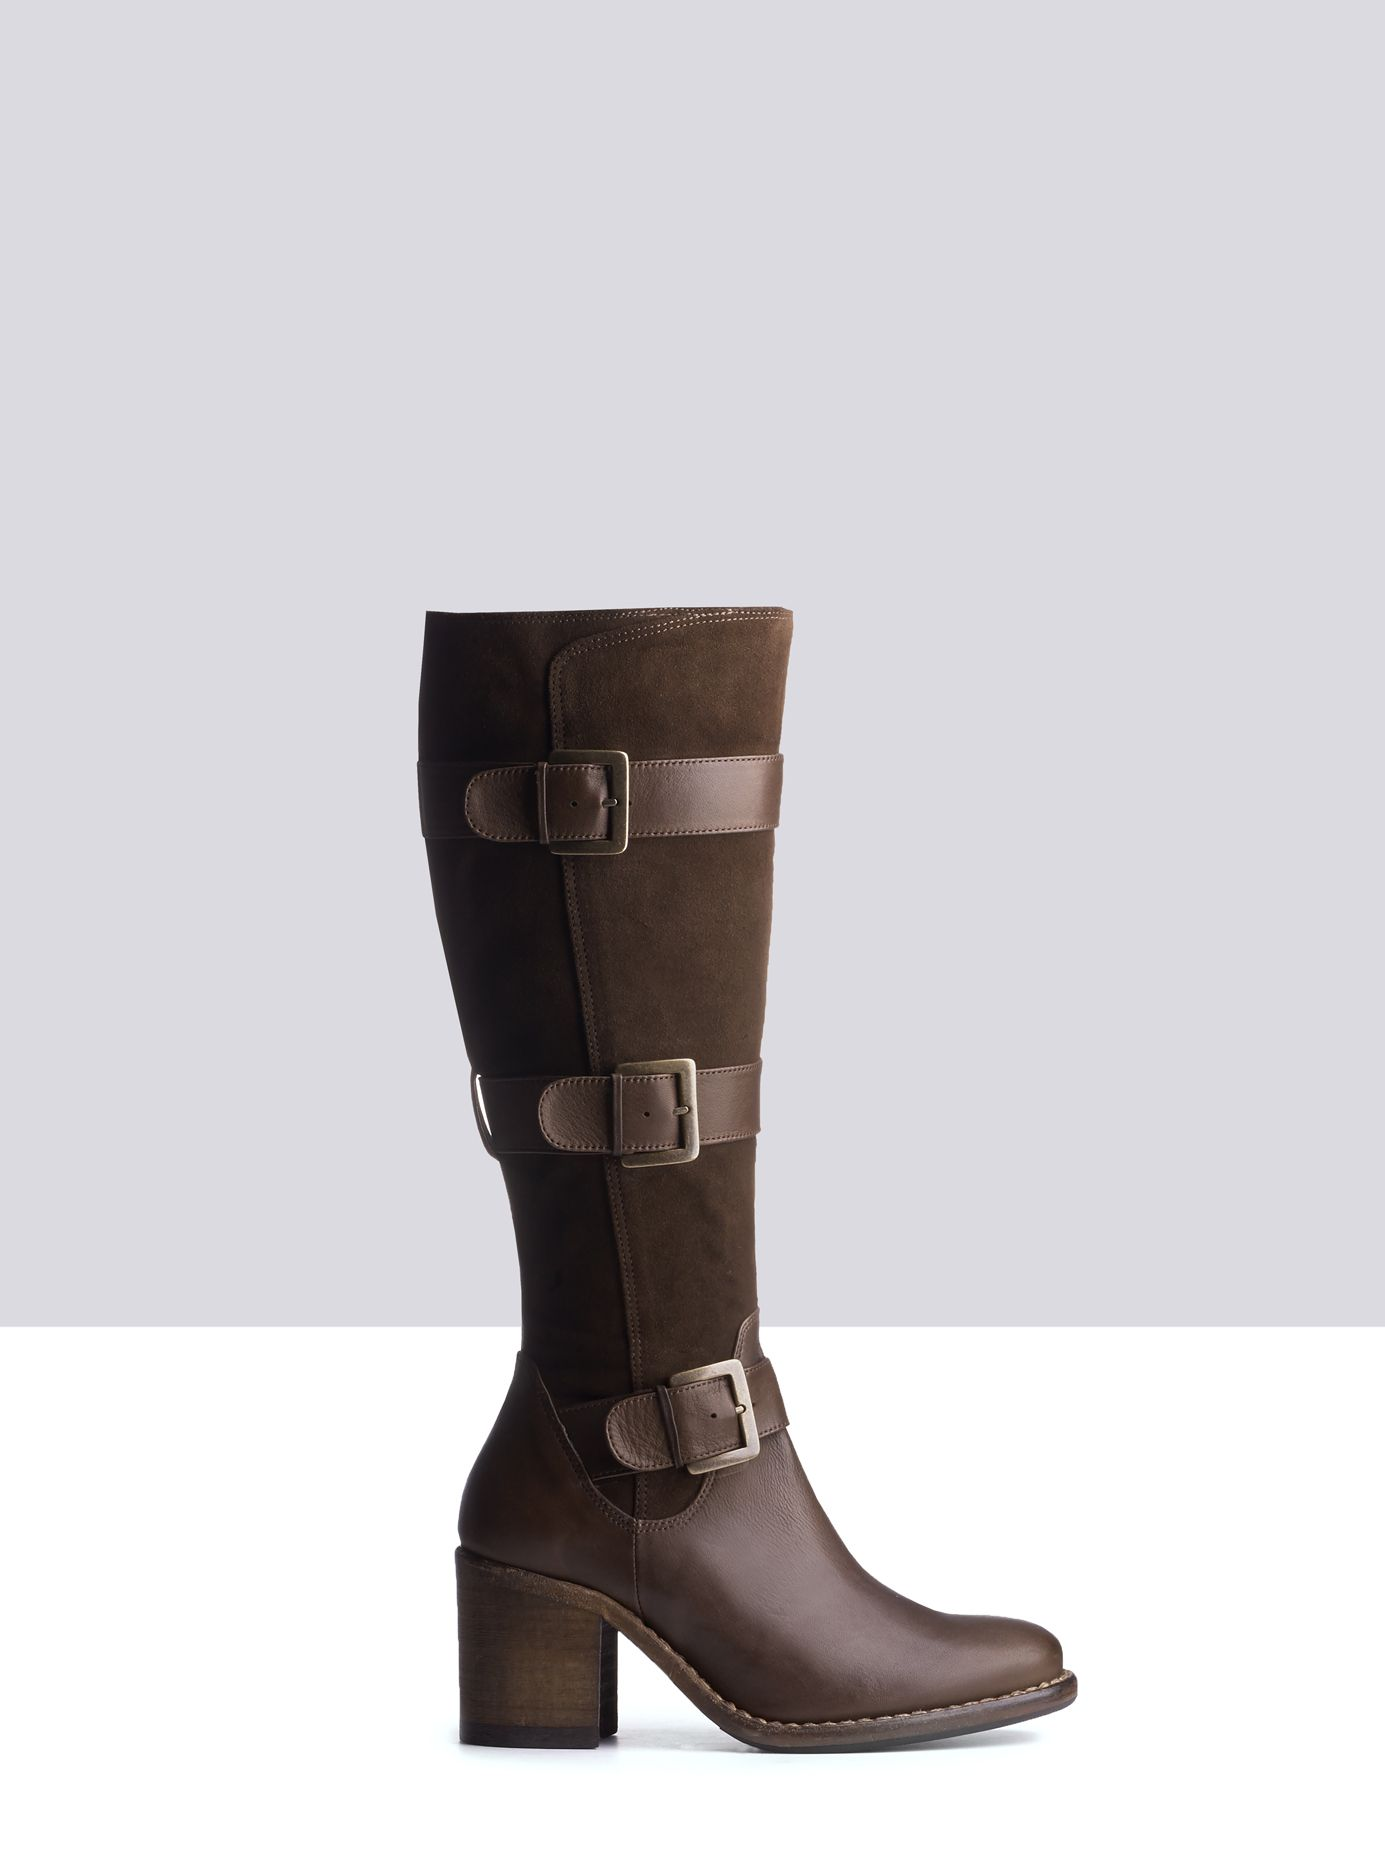 Peronella Brown Leather ladies boots small 1 | Brown leather